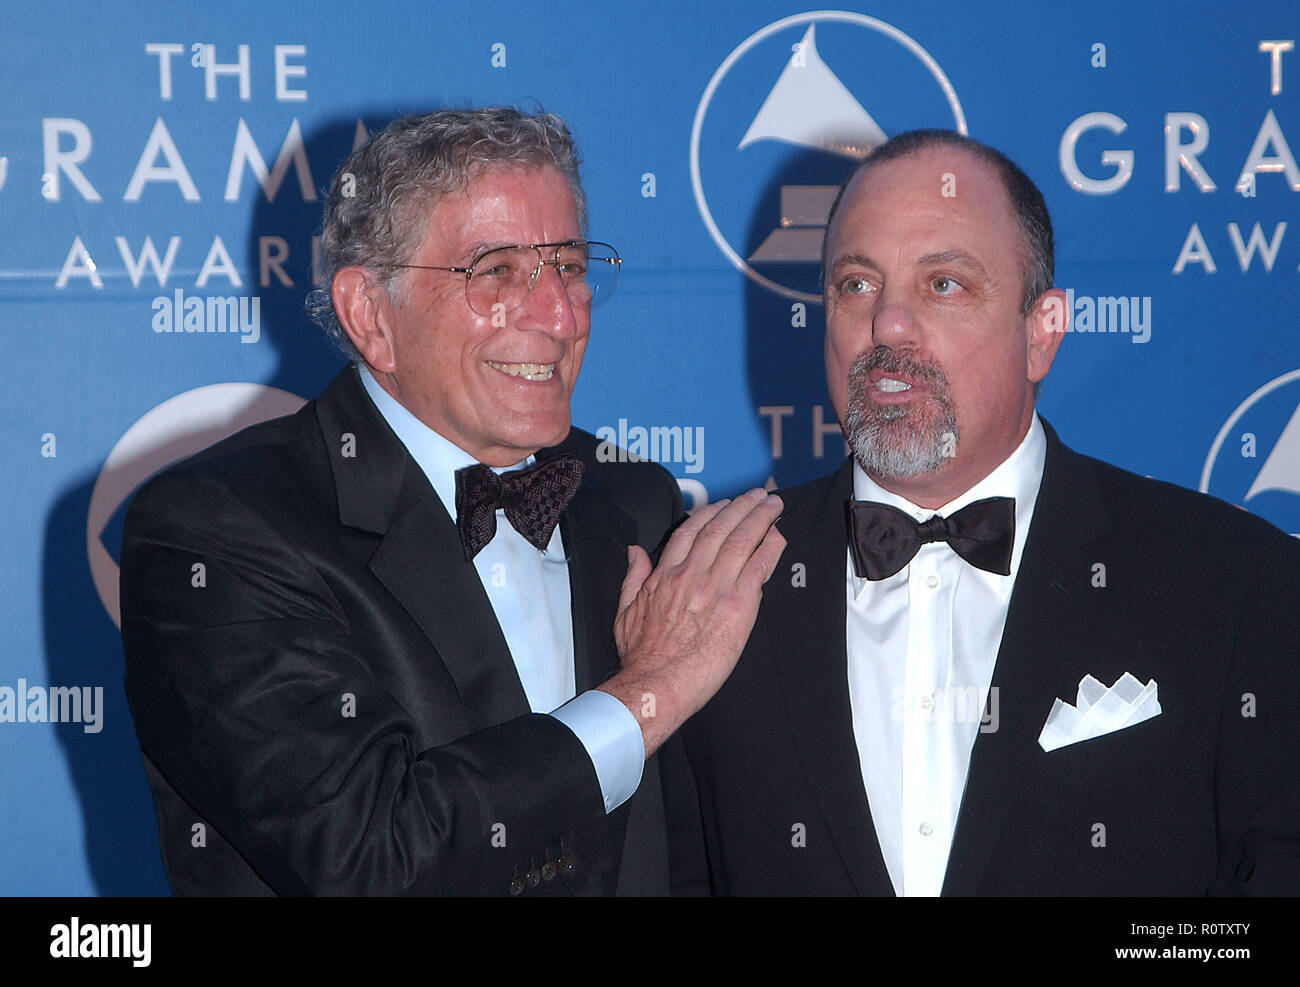 -            BennettTony_BillyJoel02.JPGBennettTony_BillyJoel02  Event in Hollywood Life - California, Red Carpet Event, USA, Film Industry, Celebriti - Stock Image